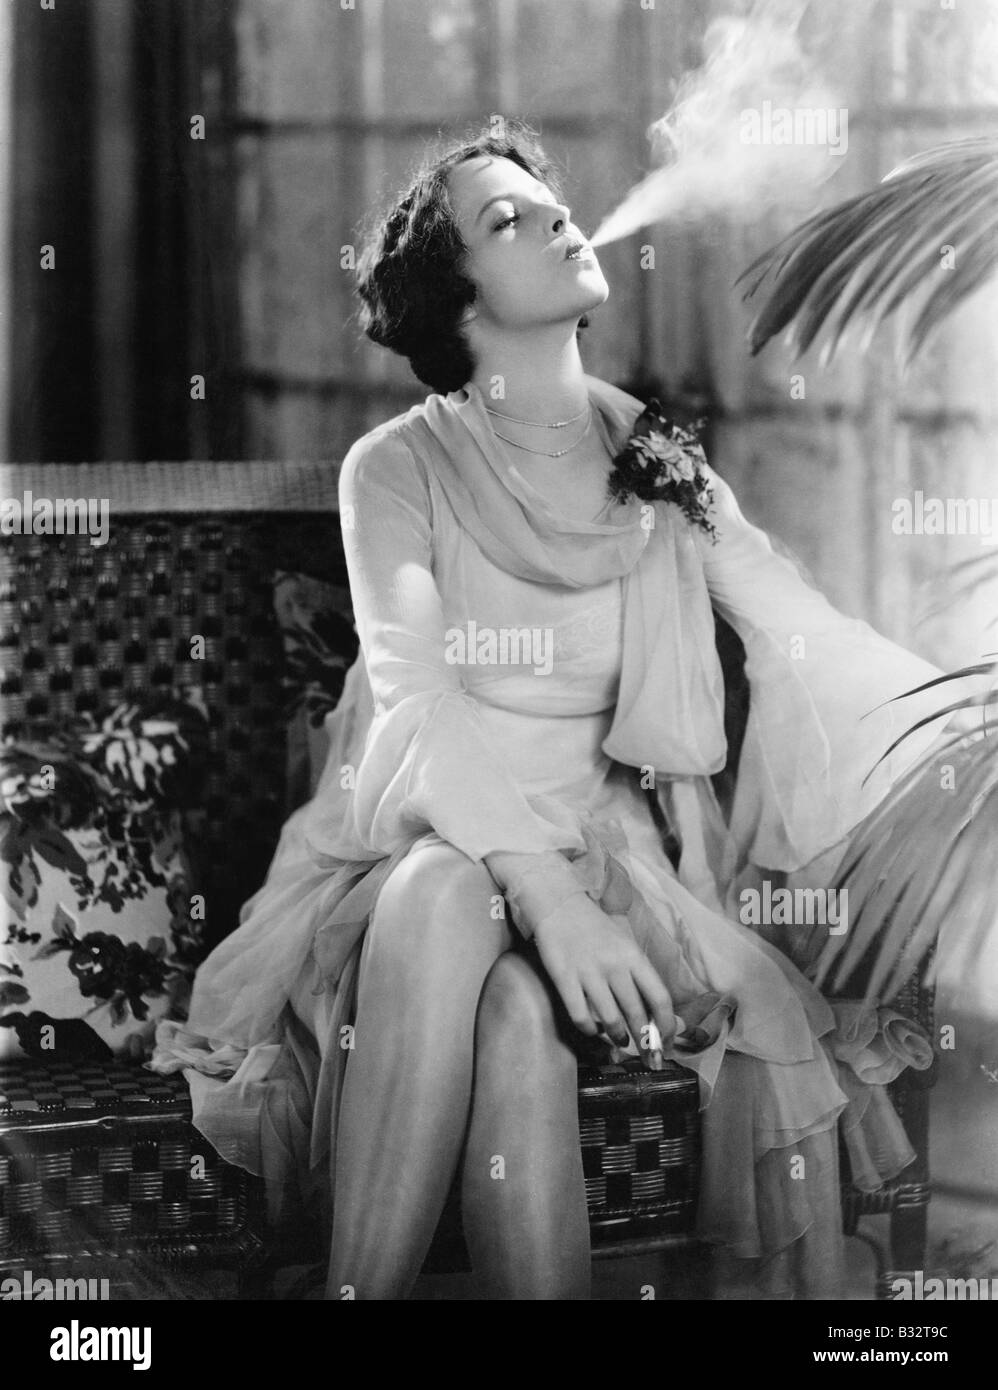 Young woman sitting on a couch smoking a cigarette - Stock Image